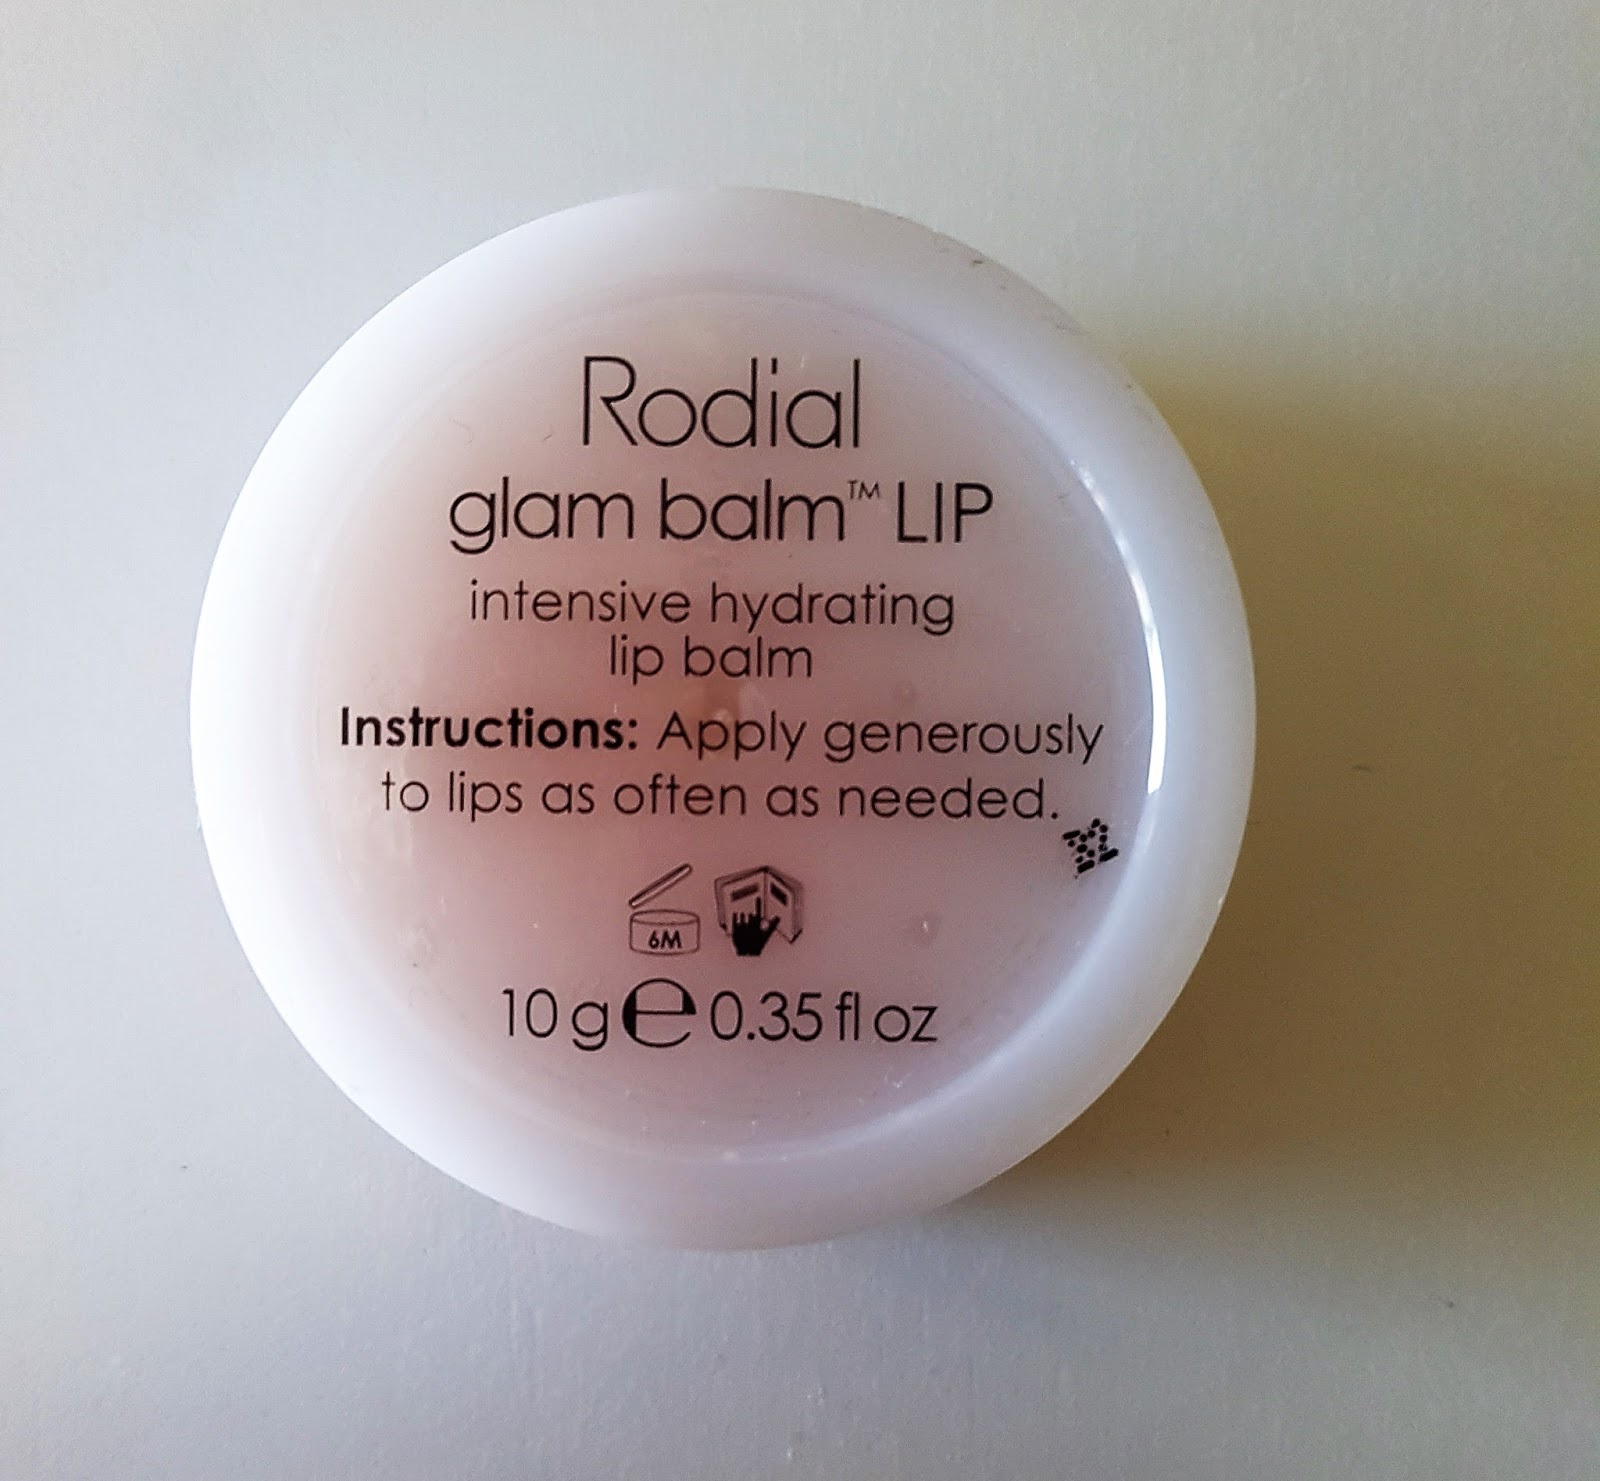 Beautifully Glossy February 2017 Klara Hylaronic Lip Mask Rodial Says Glam Balm Is An Intensive Designed To Hydrate Smooth And Protect The Lips Shea Butter Vitamin E Soothe Soften